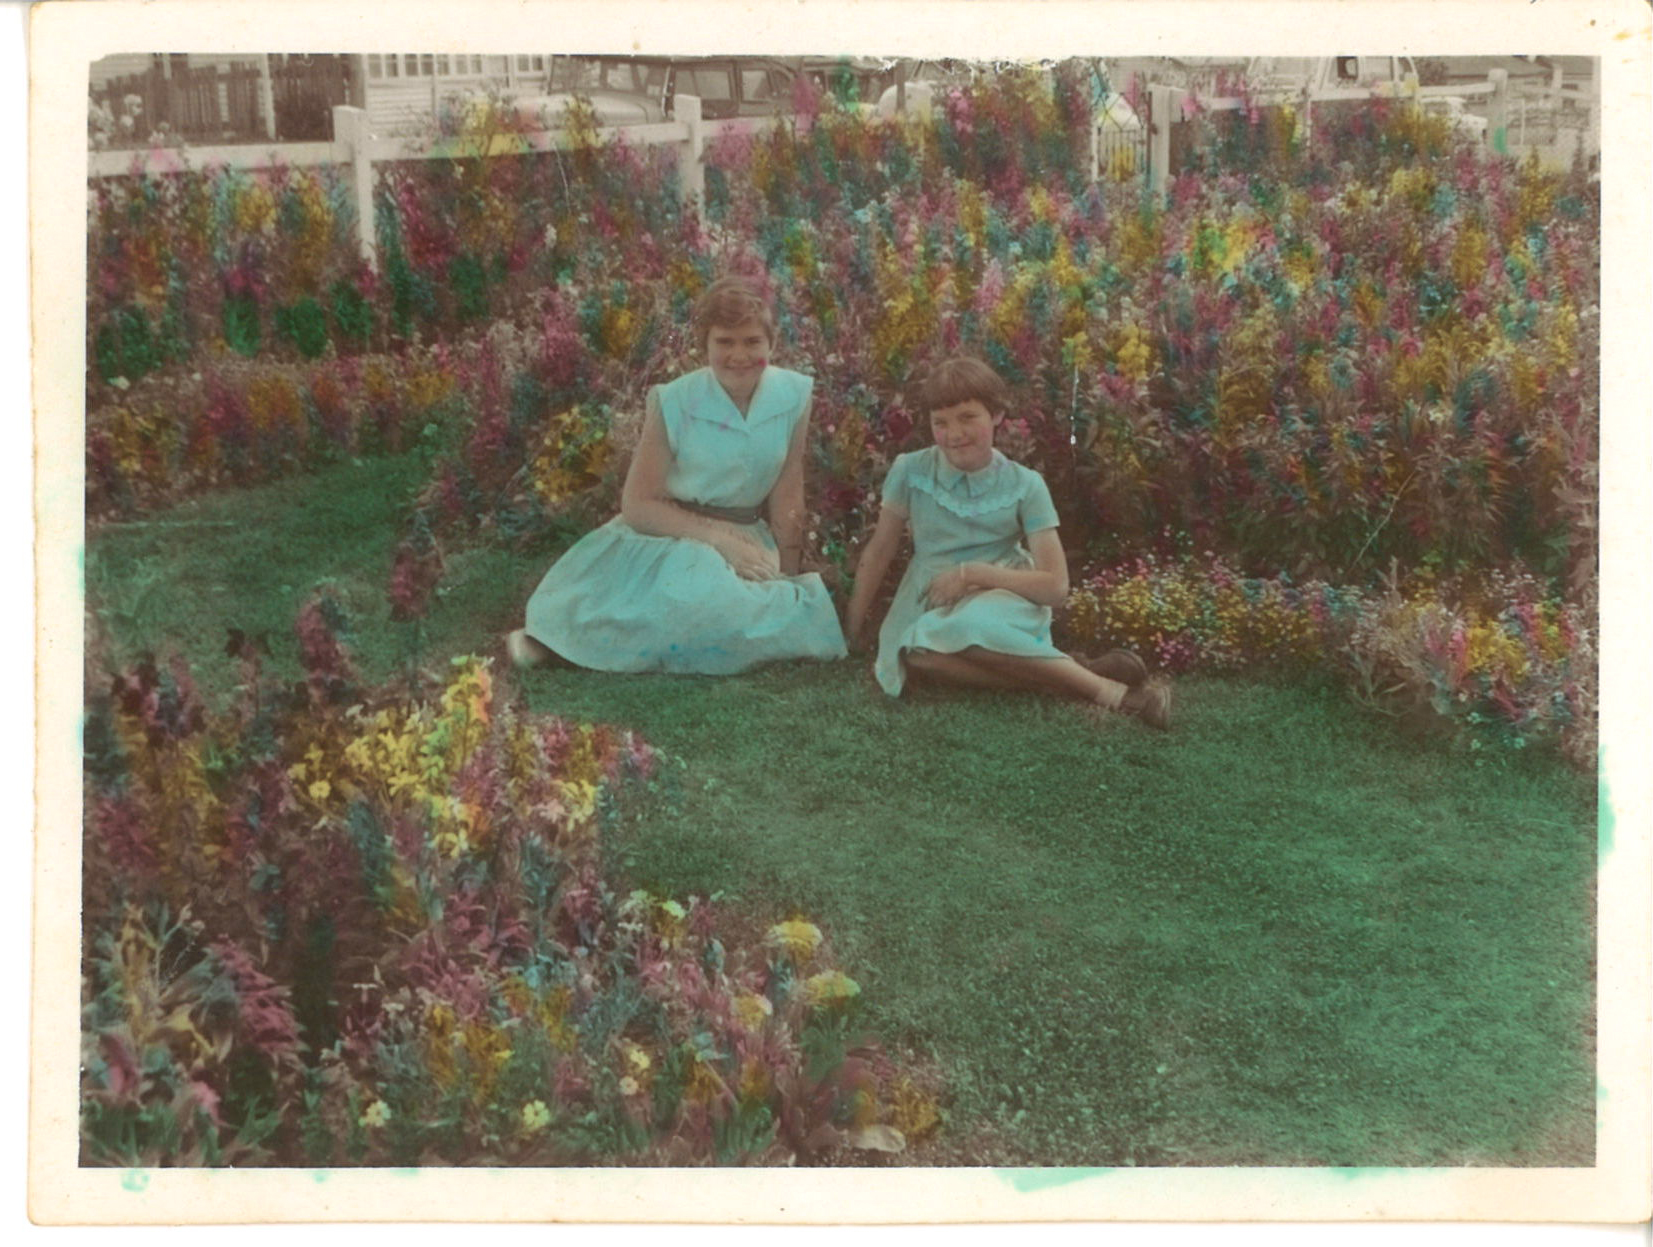 After-school activities were more simple back in my mother's day, here she is playing in the front garden in her family home in Ashgrove in Brisbane, Australia!